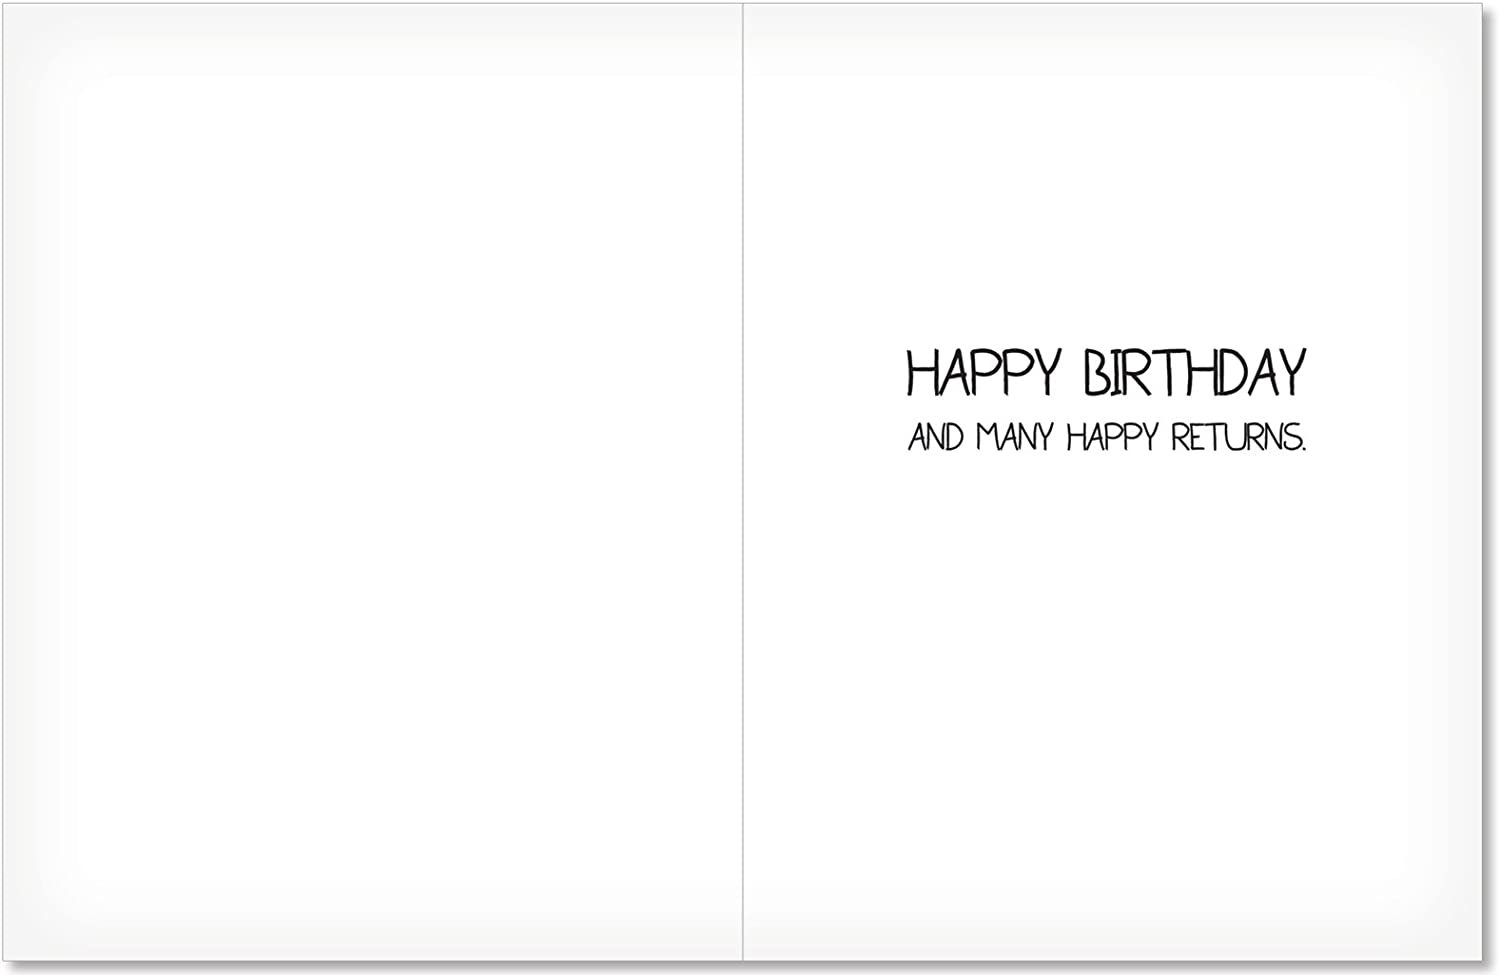 Funny Birthday Greeting Card with 4.63 x 6.75 inch Envelope by NobleWorks 6201Z Popcorn Recycle